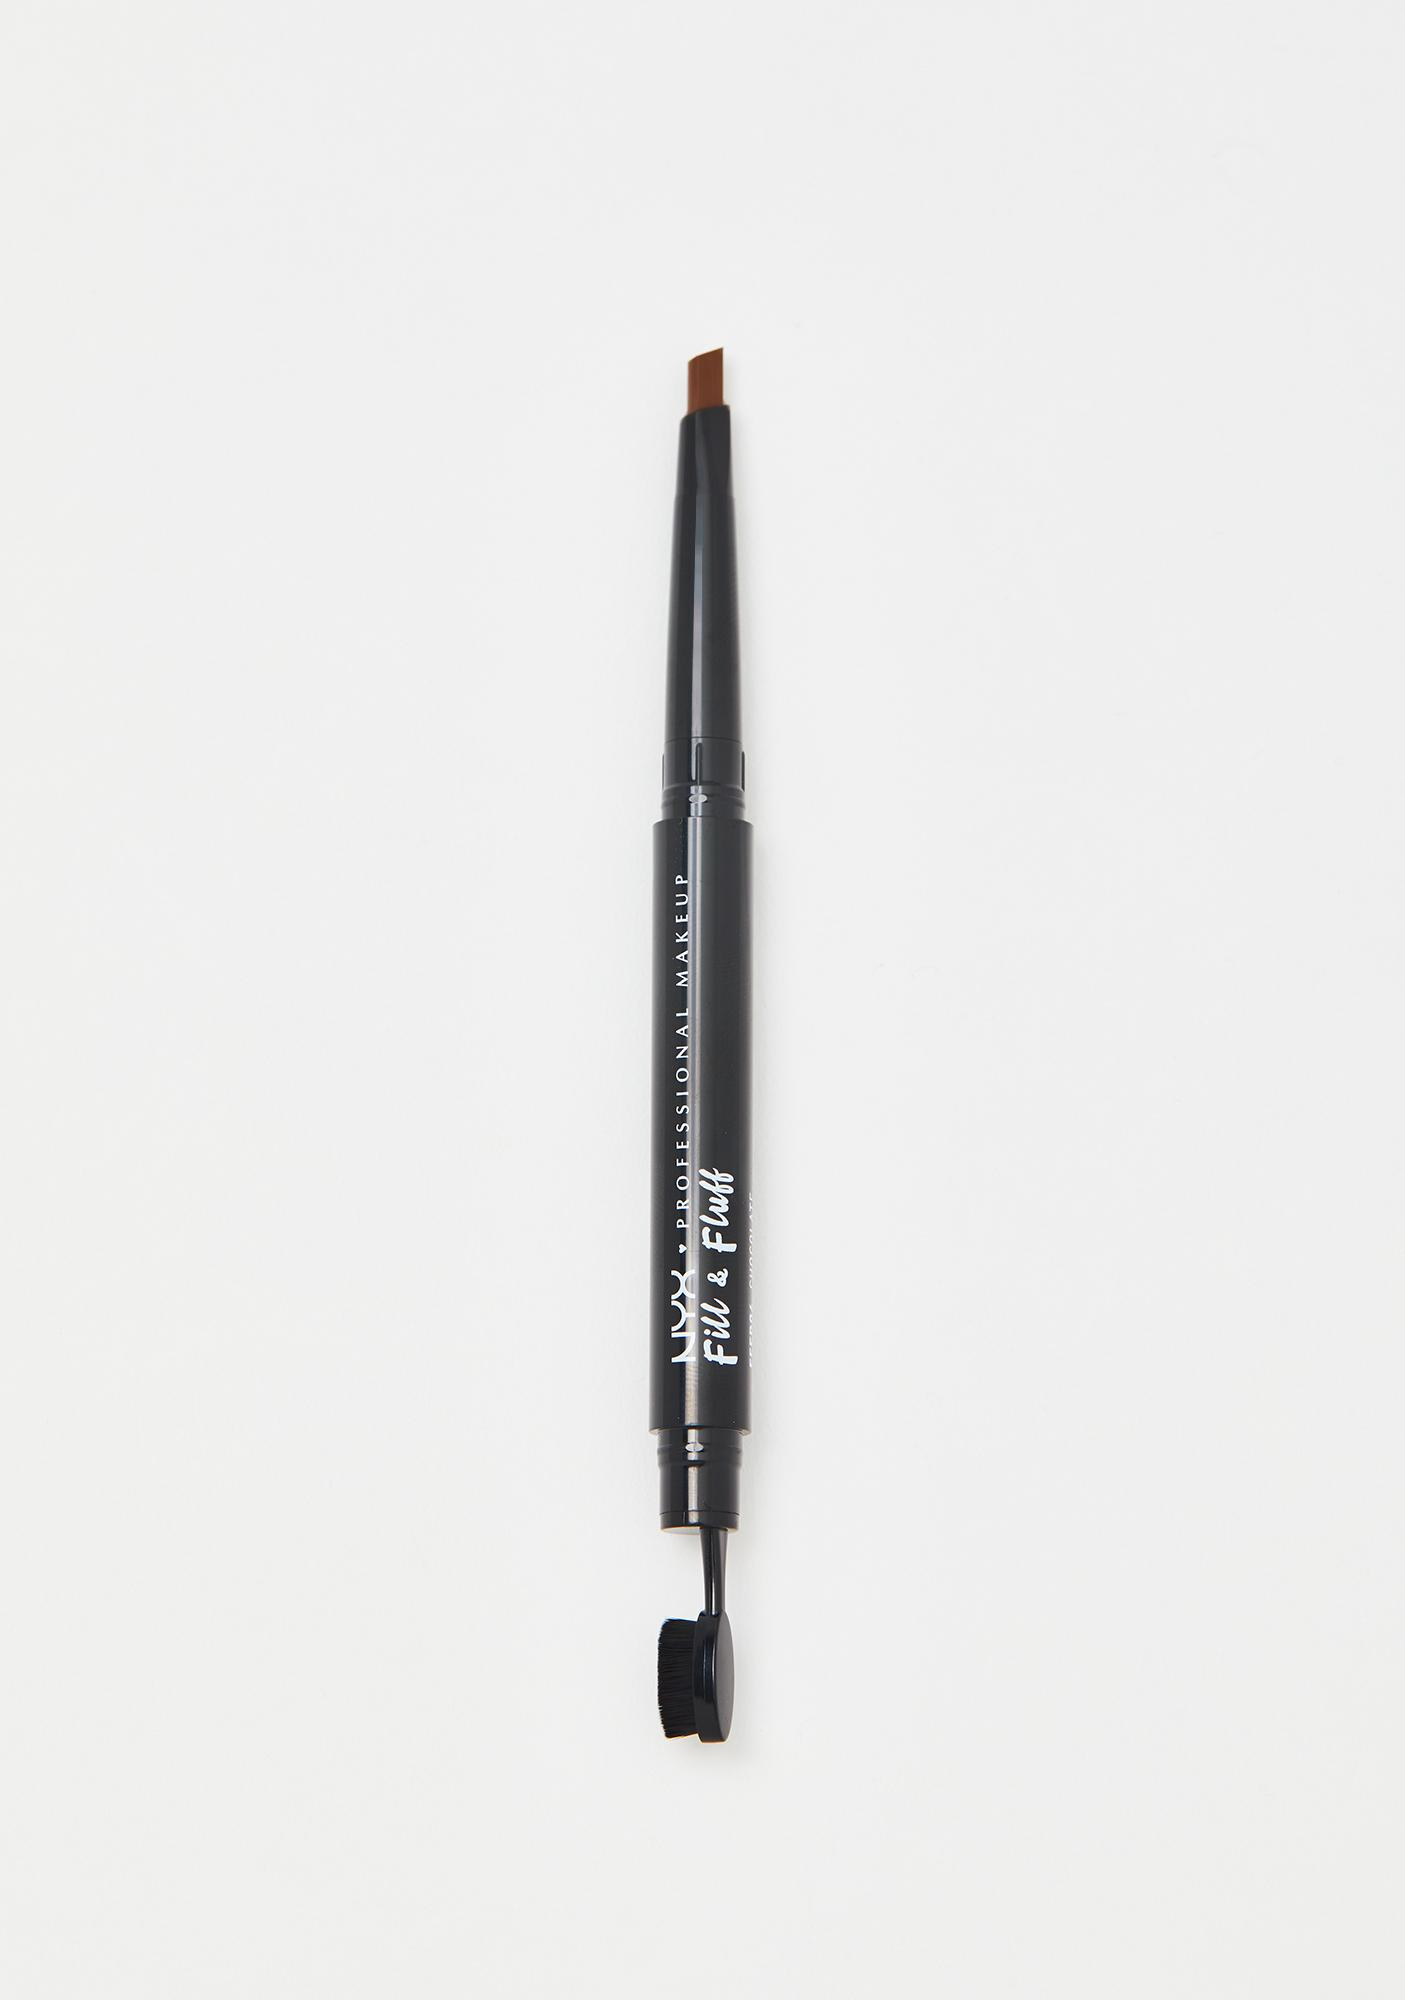 NYX Professional Makeup Chocolate Fill & Fluff Eyebrow Pomade Pencil